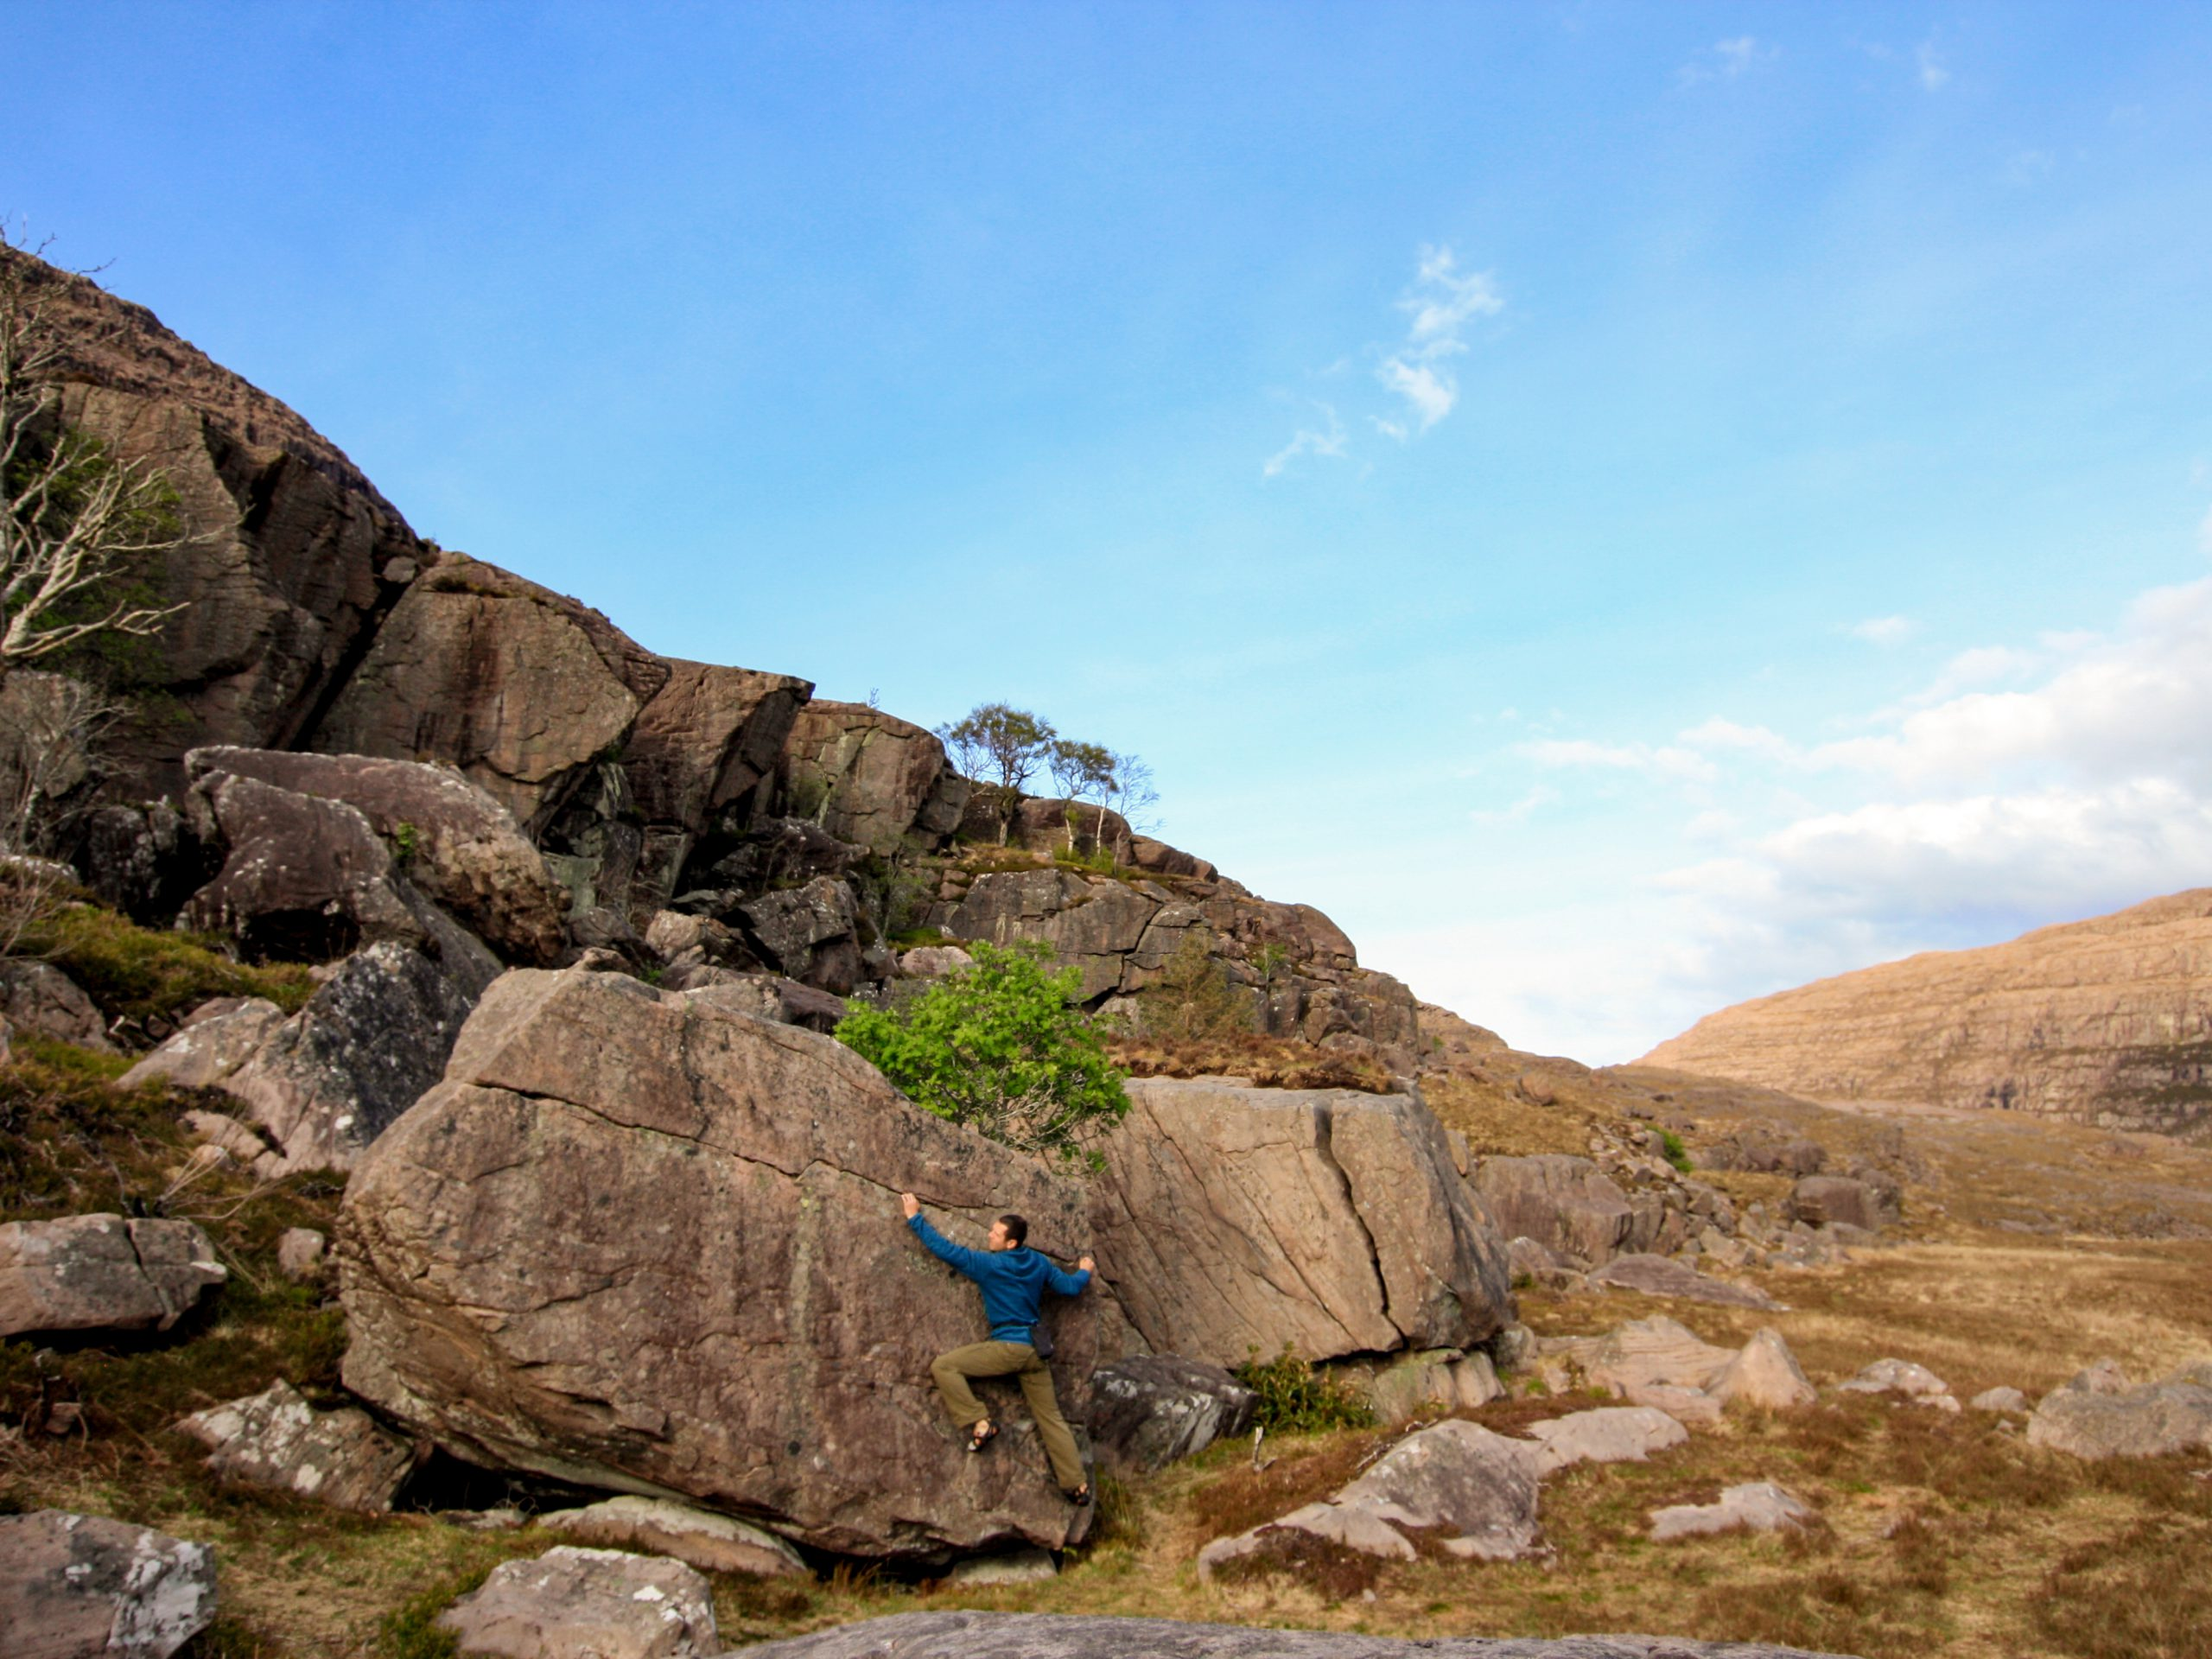 Bouldering at the Celtic Jumble